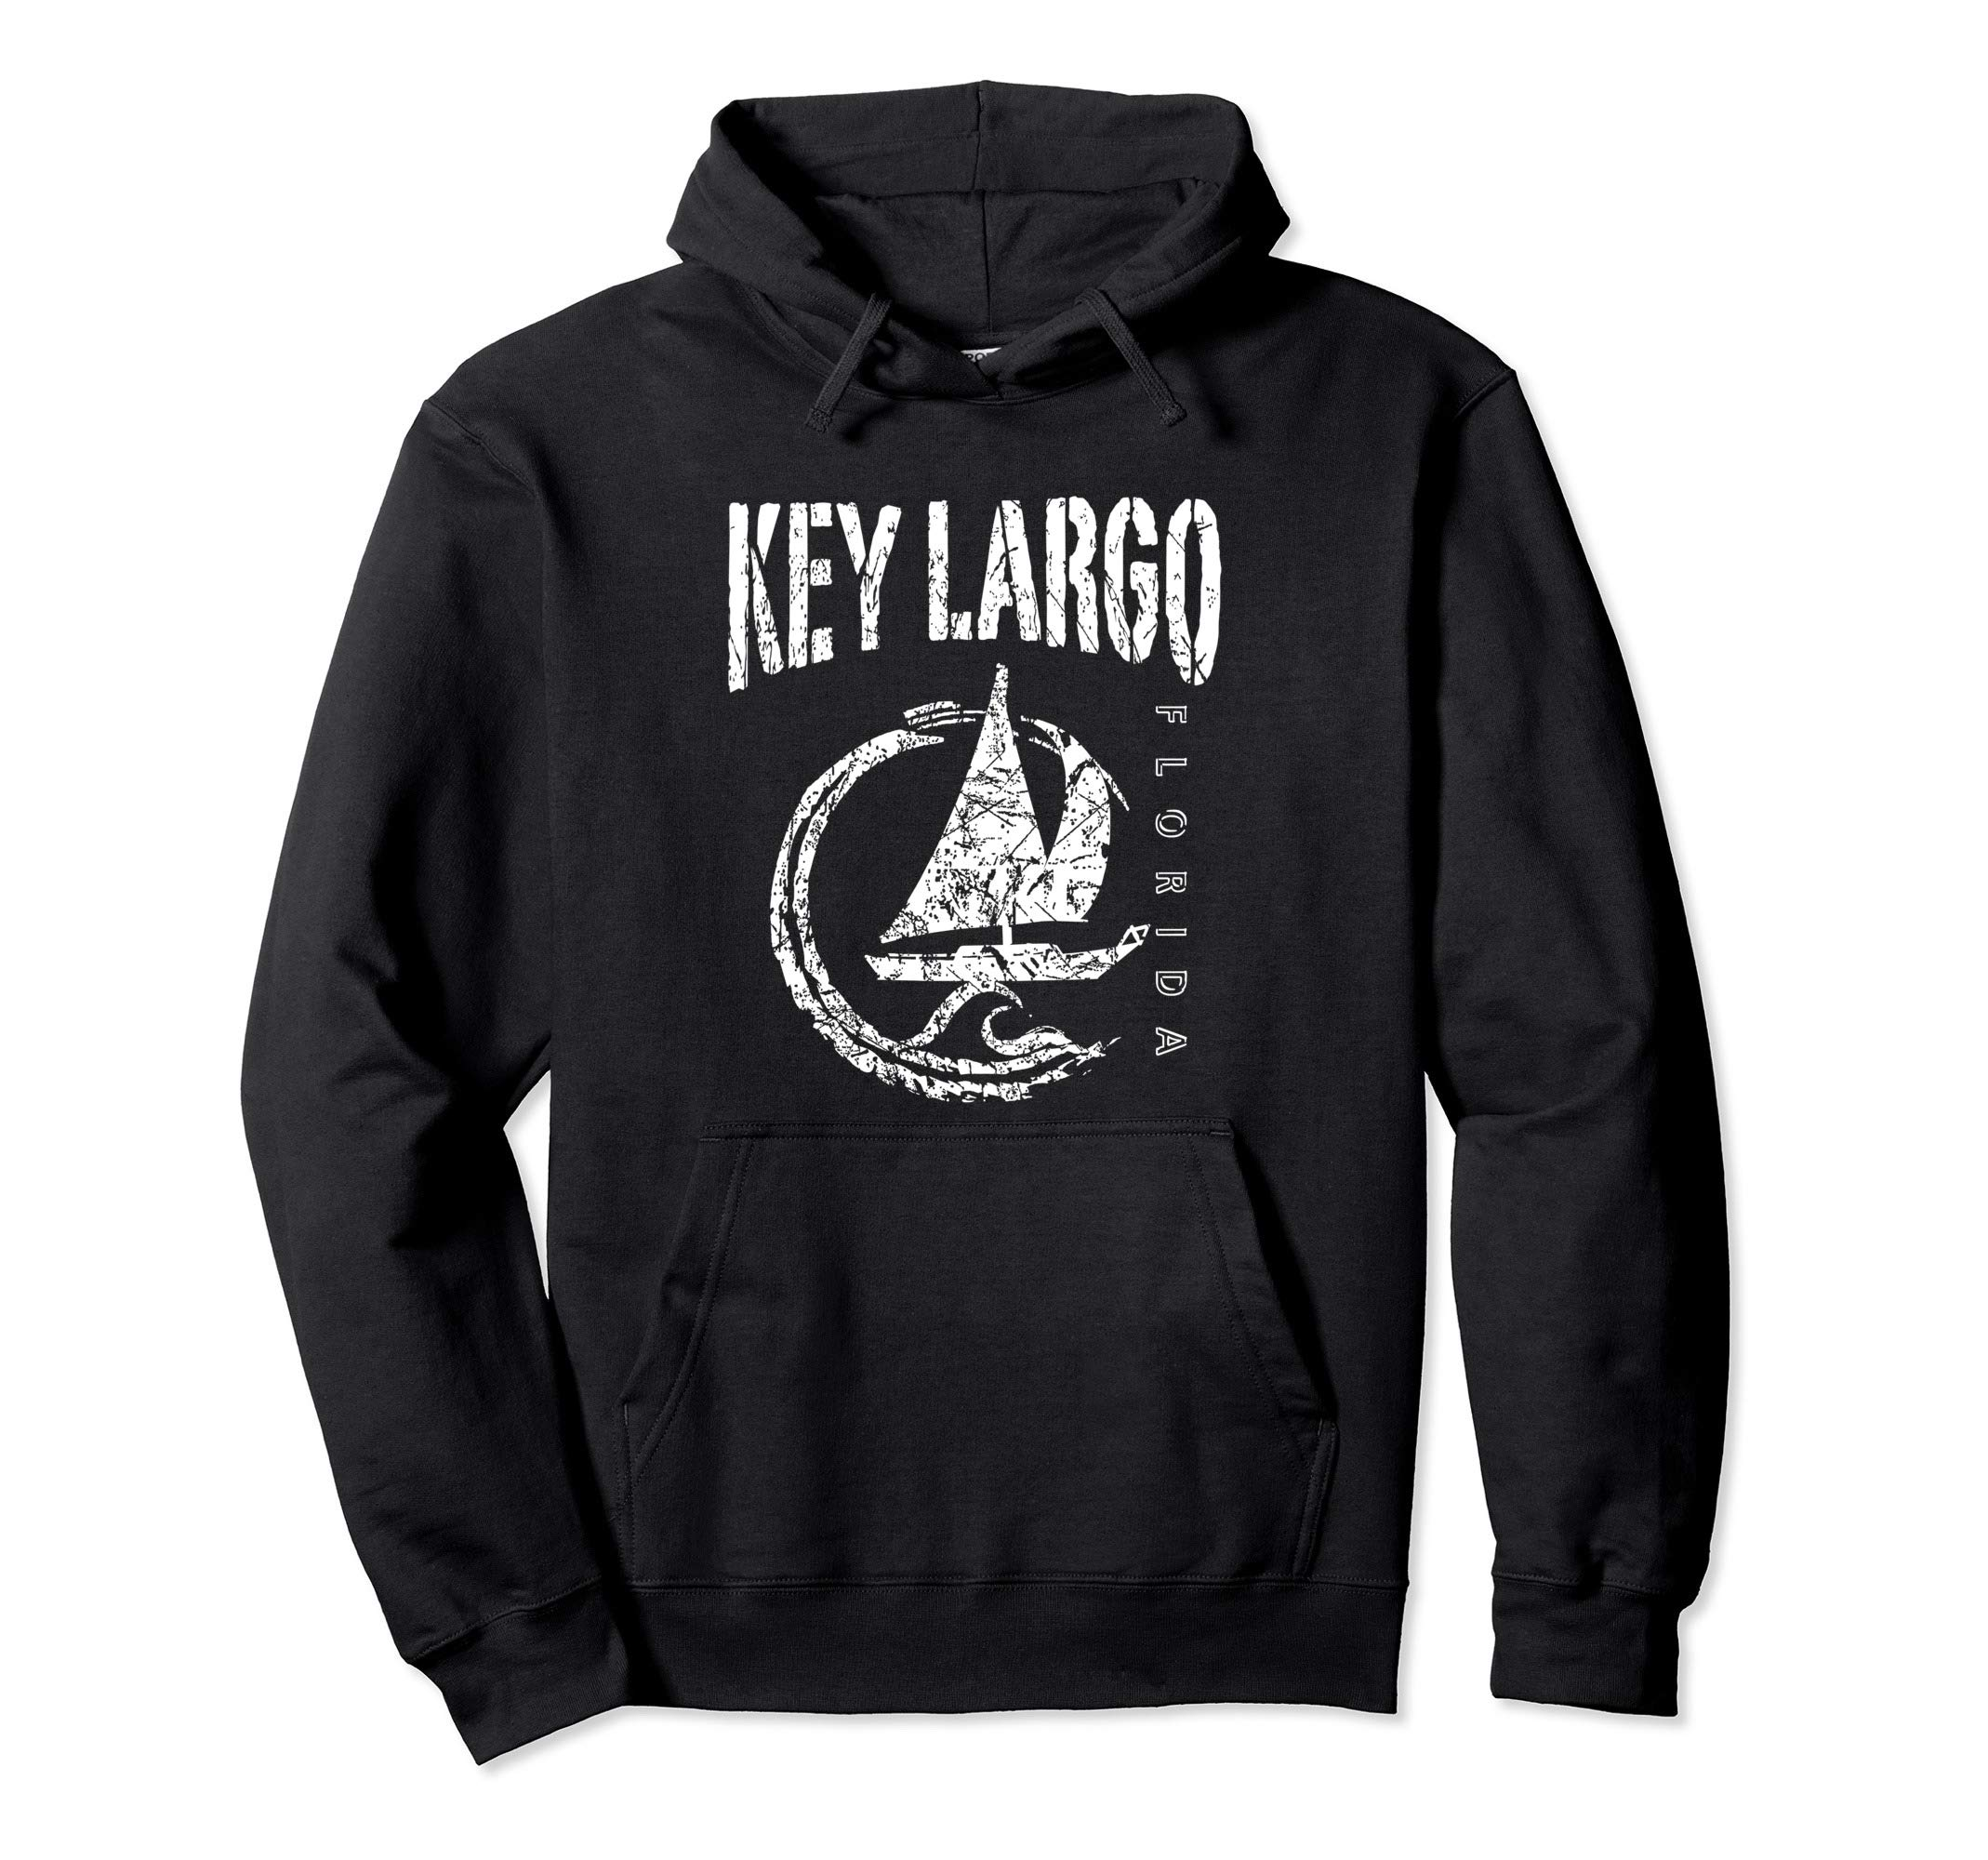 Key Largo Florida Souvenir, Sailboat Sailing Pullover Hoodie by KEY LARGO Souvenir Gift Florida Sailing FL